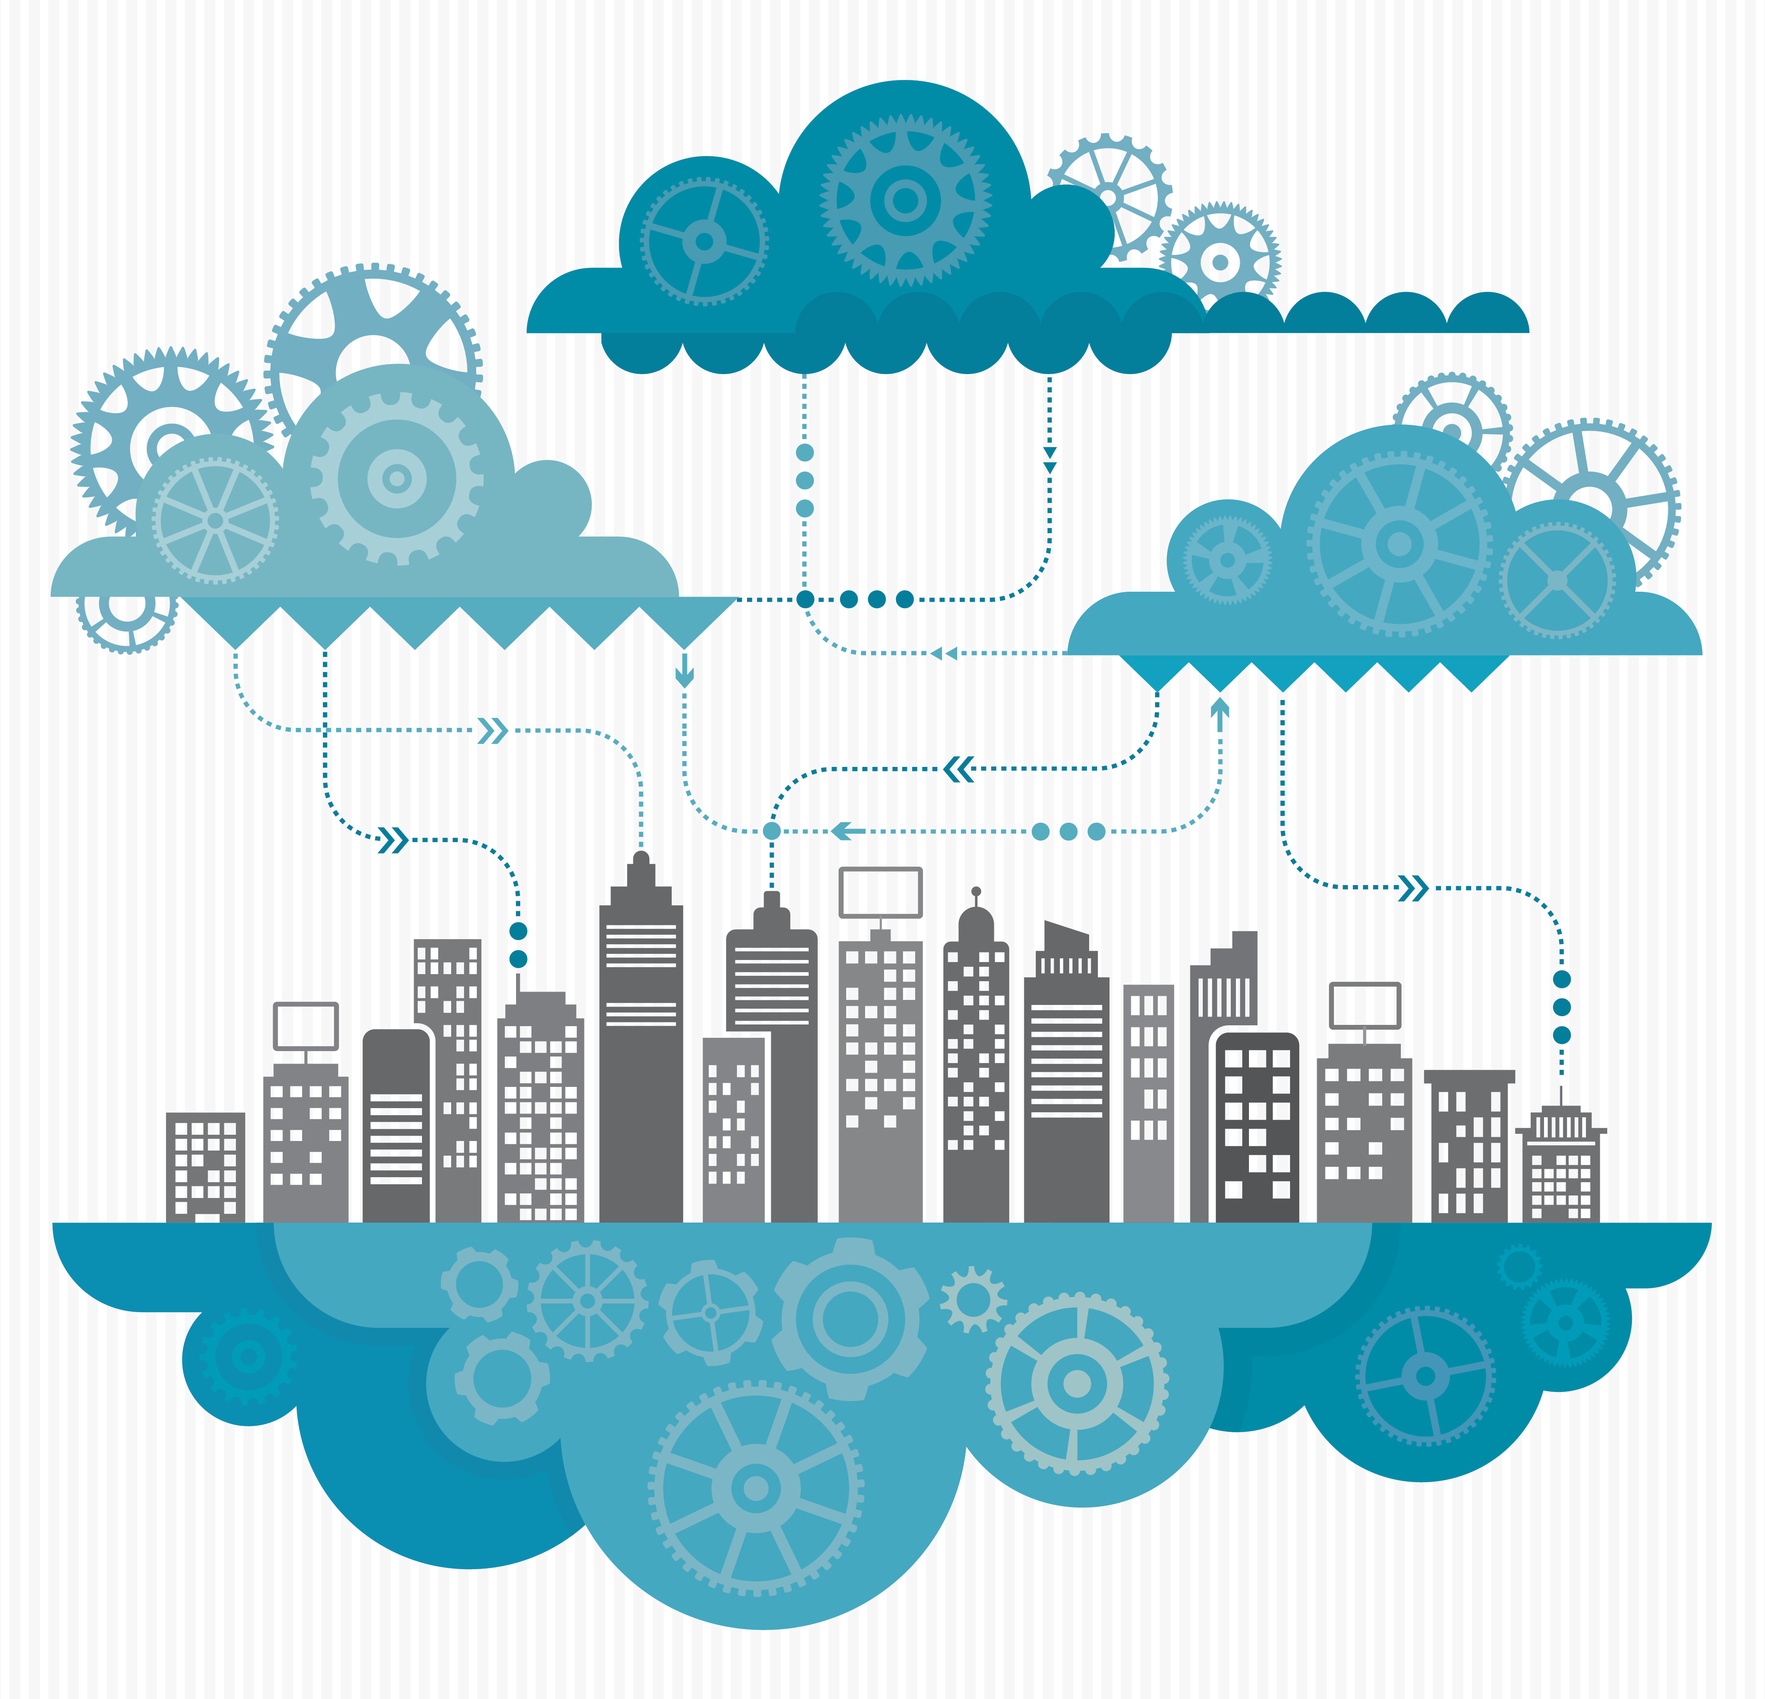 On Premise vs. Cloud: Key Differences, Benefits, and Risks